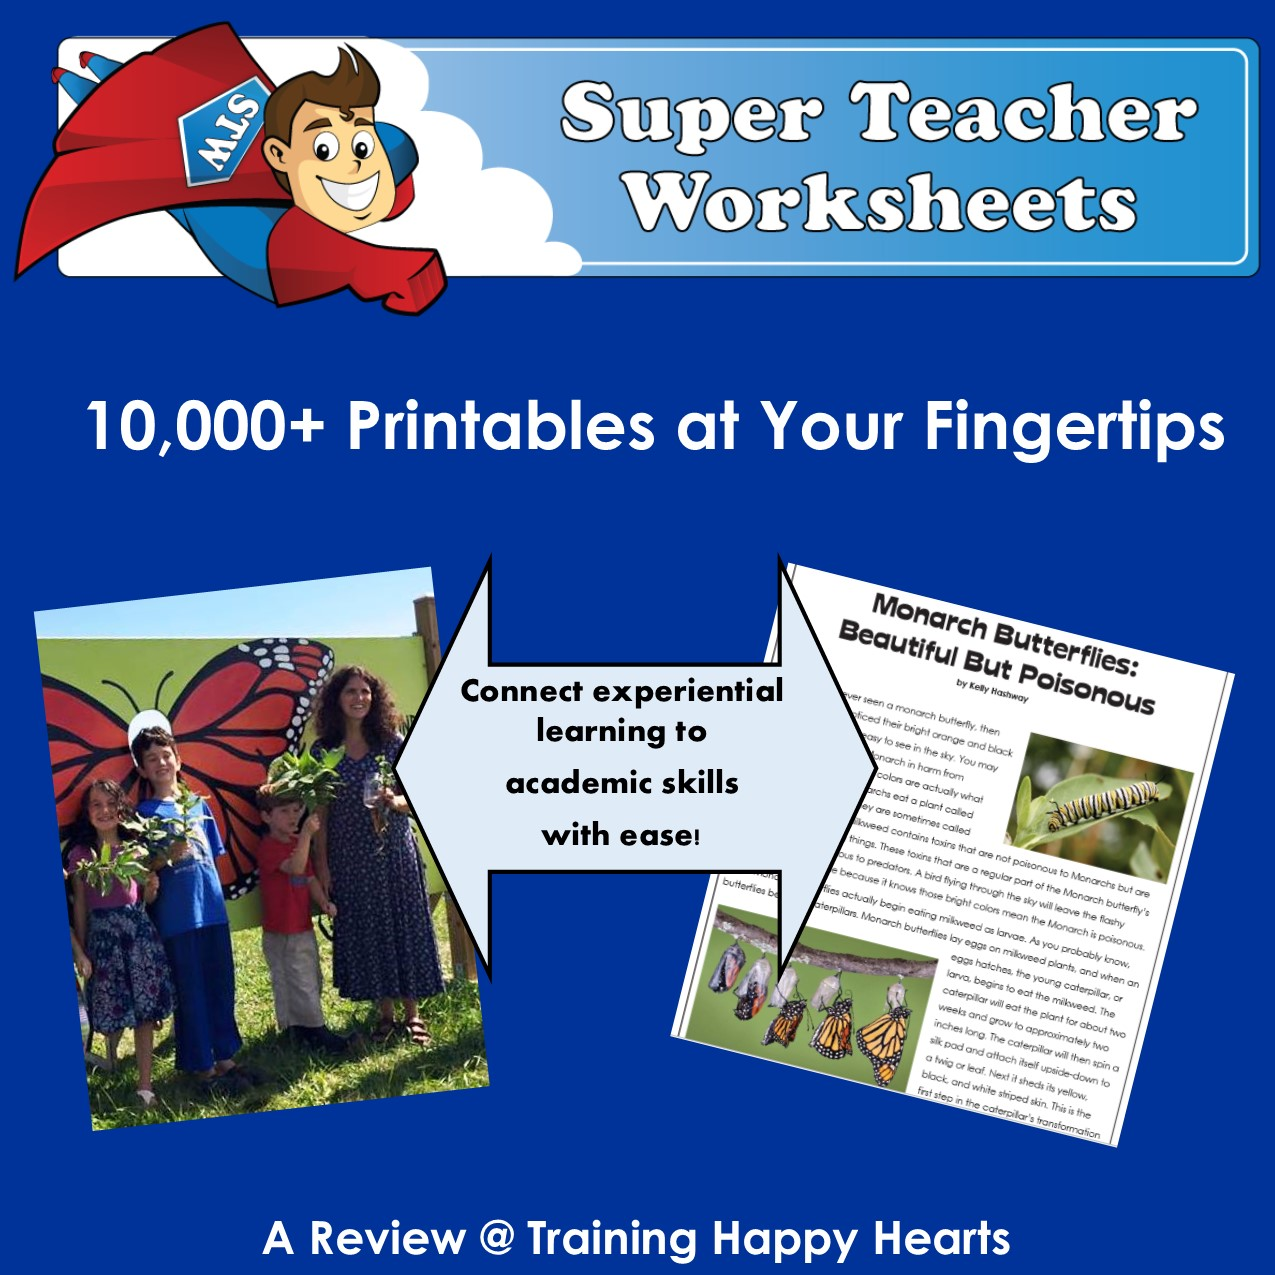 Worksheets Super Teacher Worksheets Password training happy hearts where can you get 10000 printable an individual membership to super teacher worksheets in doing so i gained access a library of over printables mainly ai